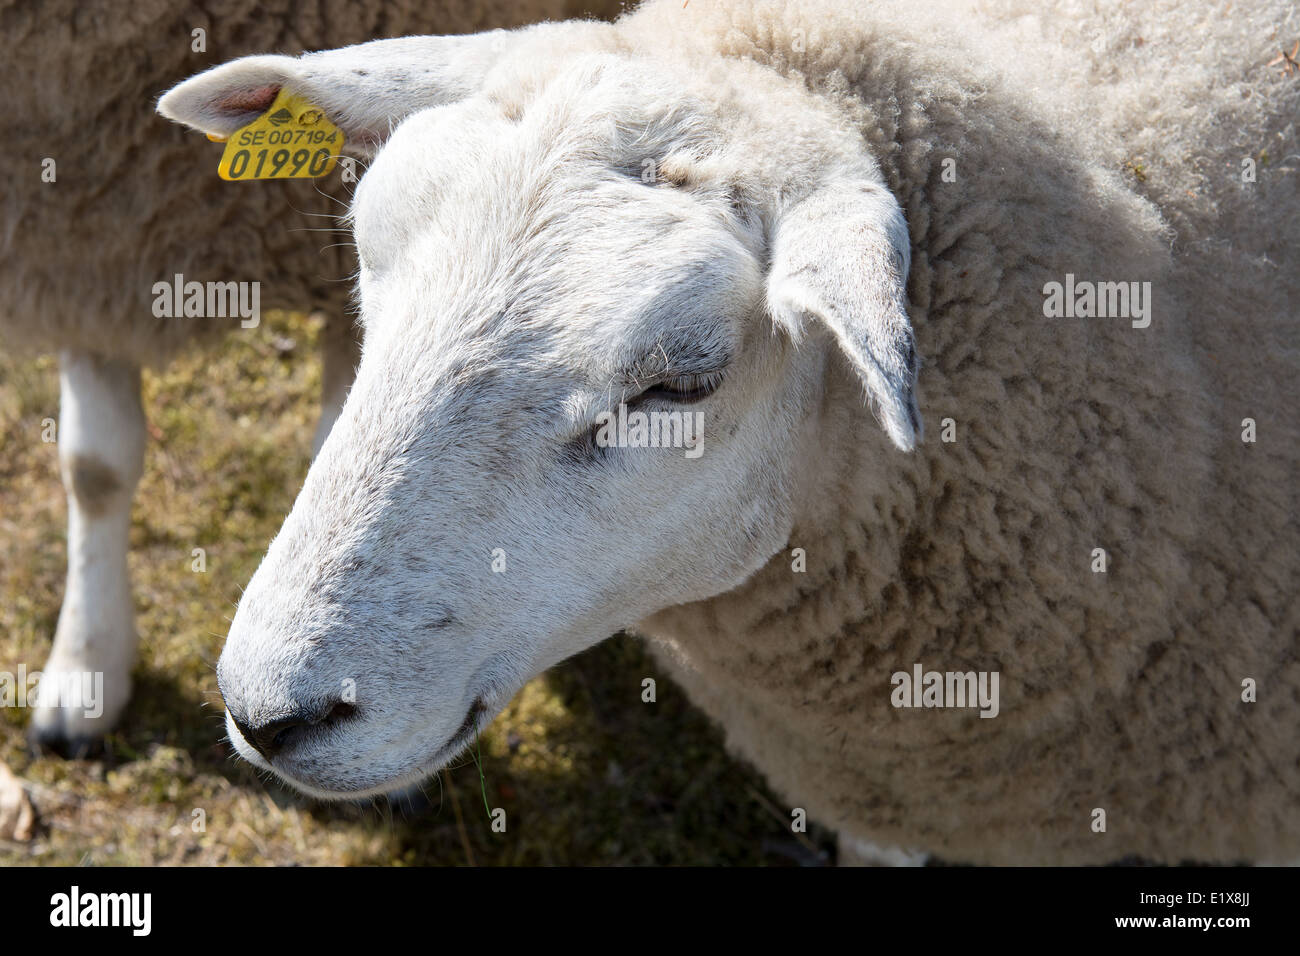 Head of a swedish sheep with ear tag - Stock Image